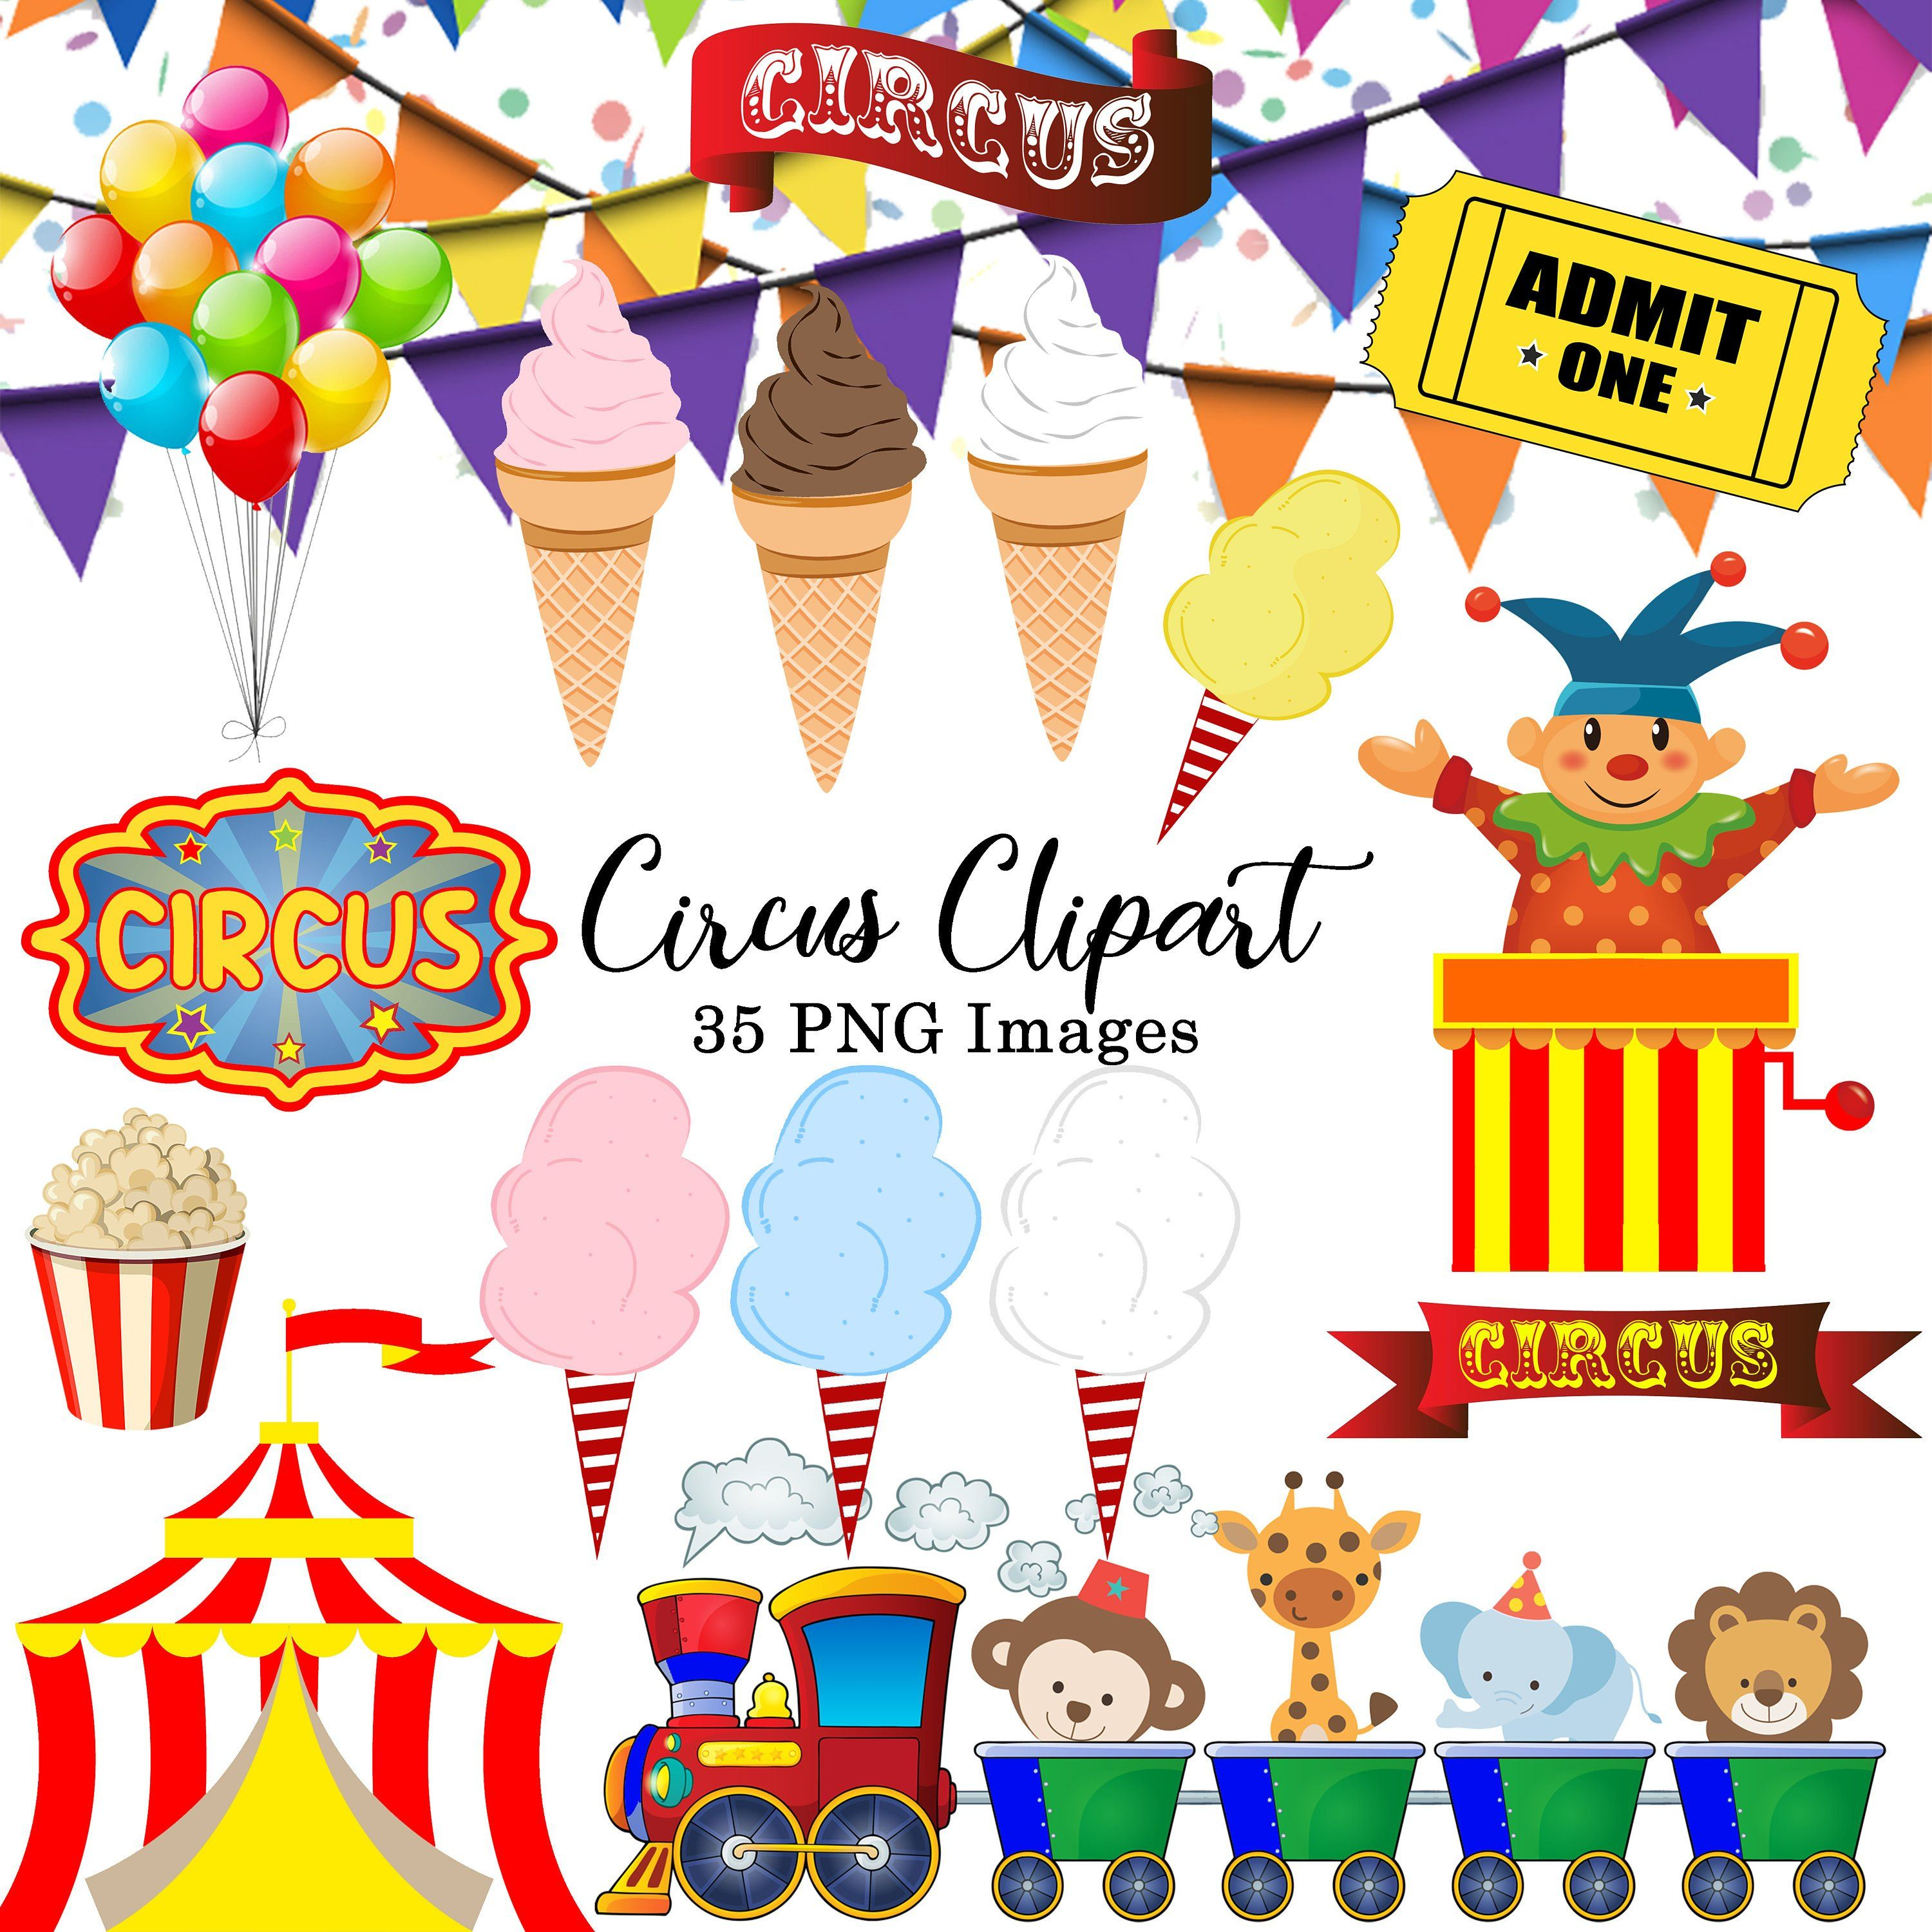 Circus Carnival Digital clipart INSTANT DOWNLOAD Animal.